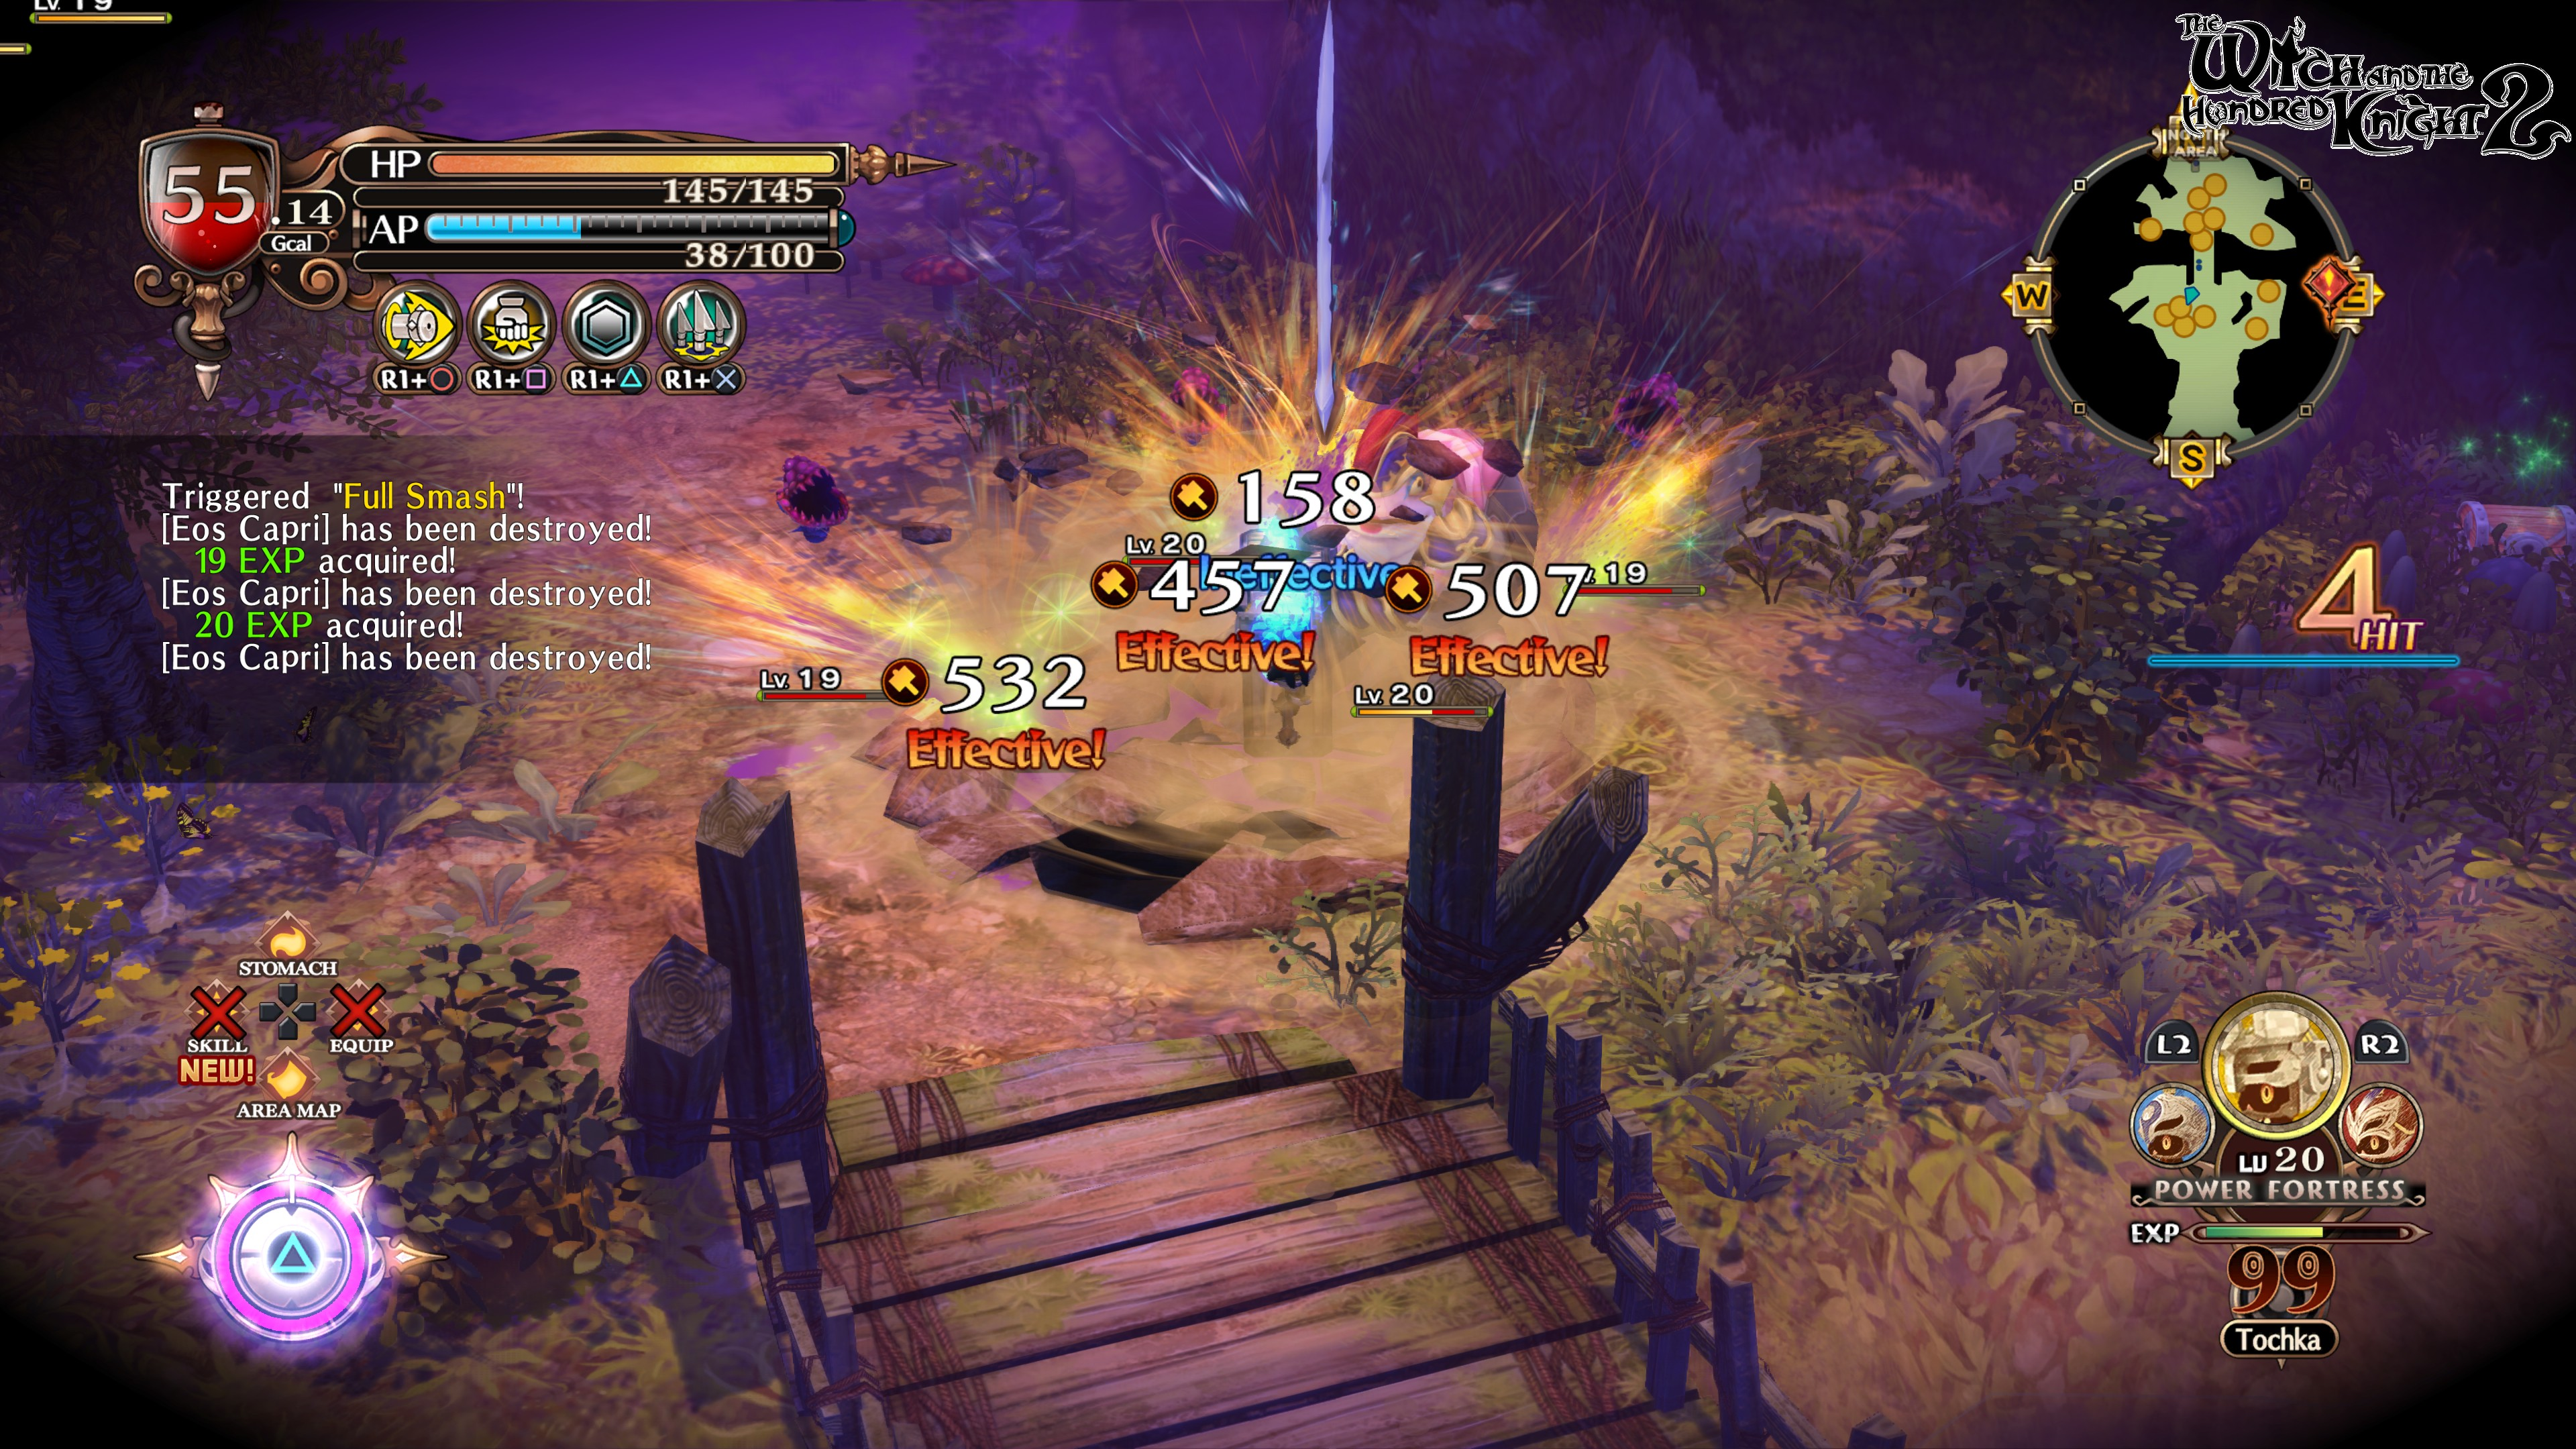 The Witch and the Hundred Knight 2 Review (PS4) - Rice Digital